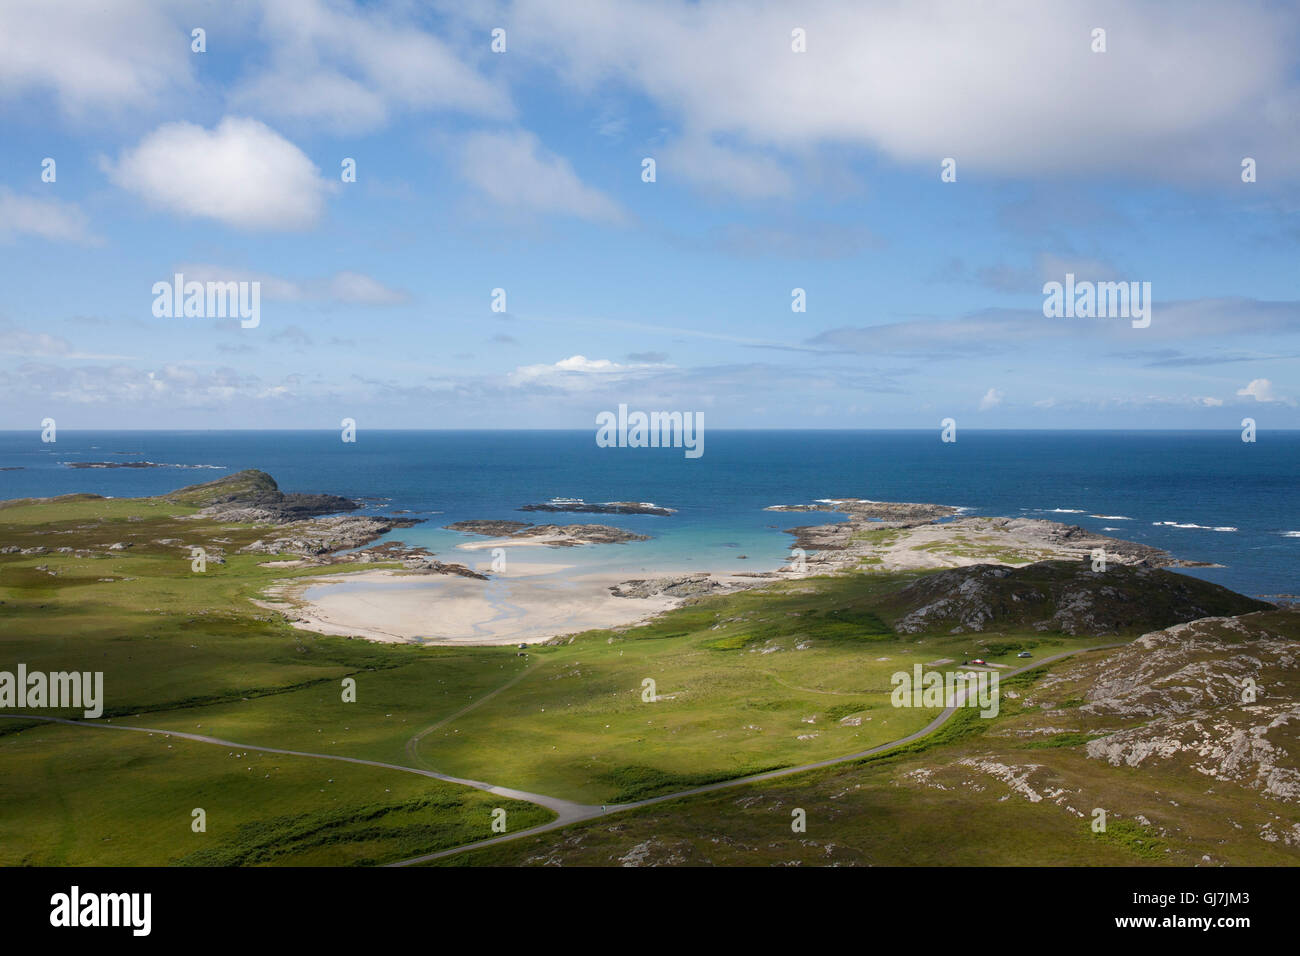 The Traigh an Tobair Fhuair Beach near Machrins on the Isle of Colonsay in the Inner Hebrides, Scotland. - Stock Image